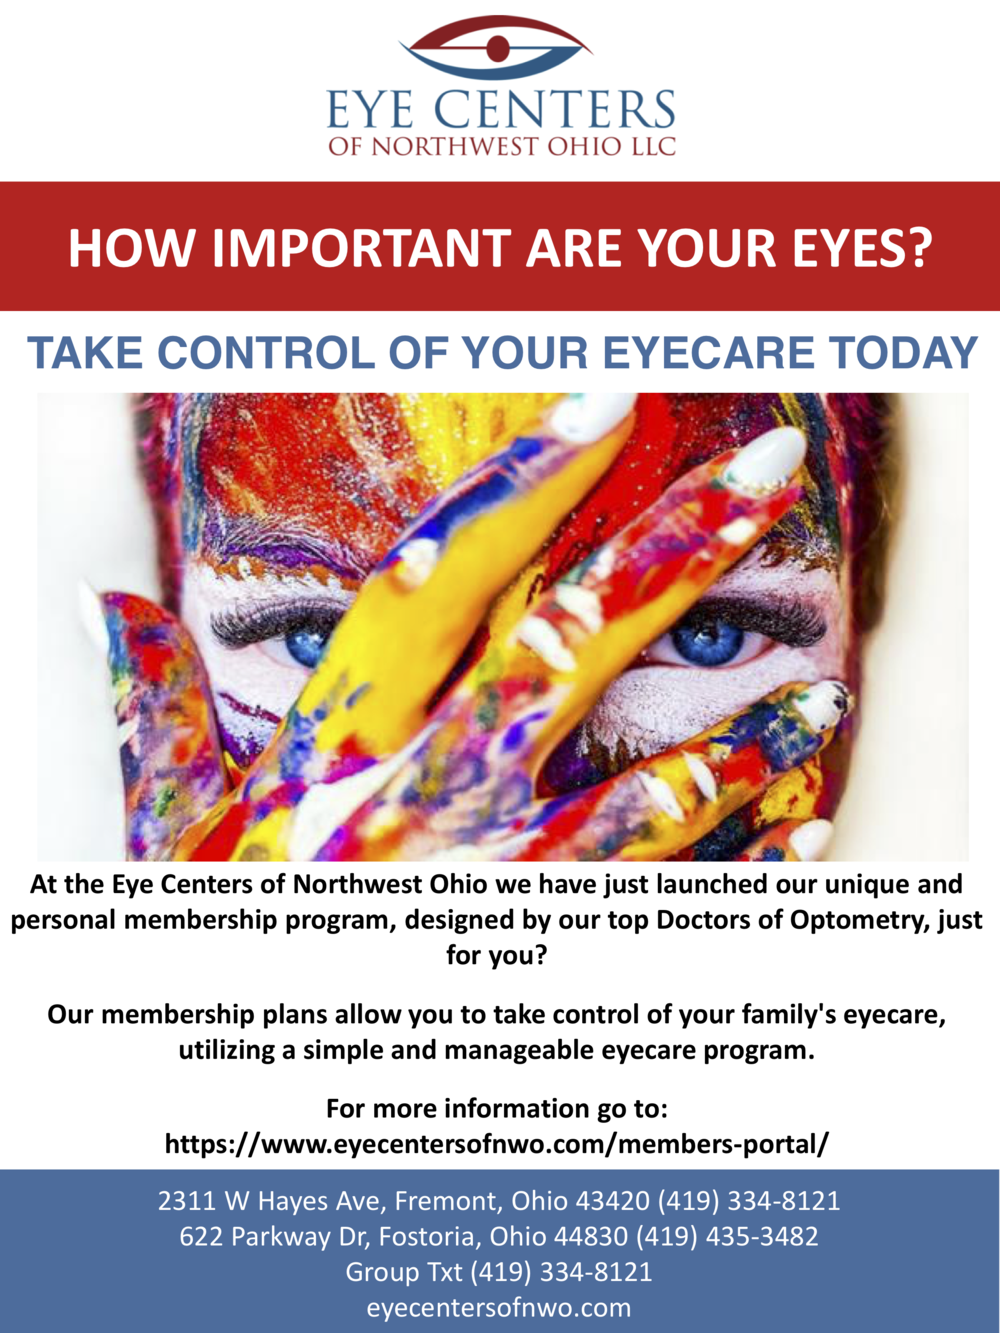 Eyecare membership program launches